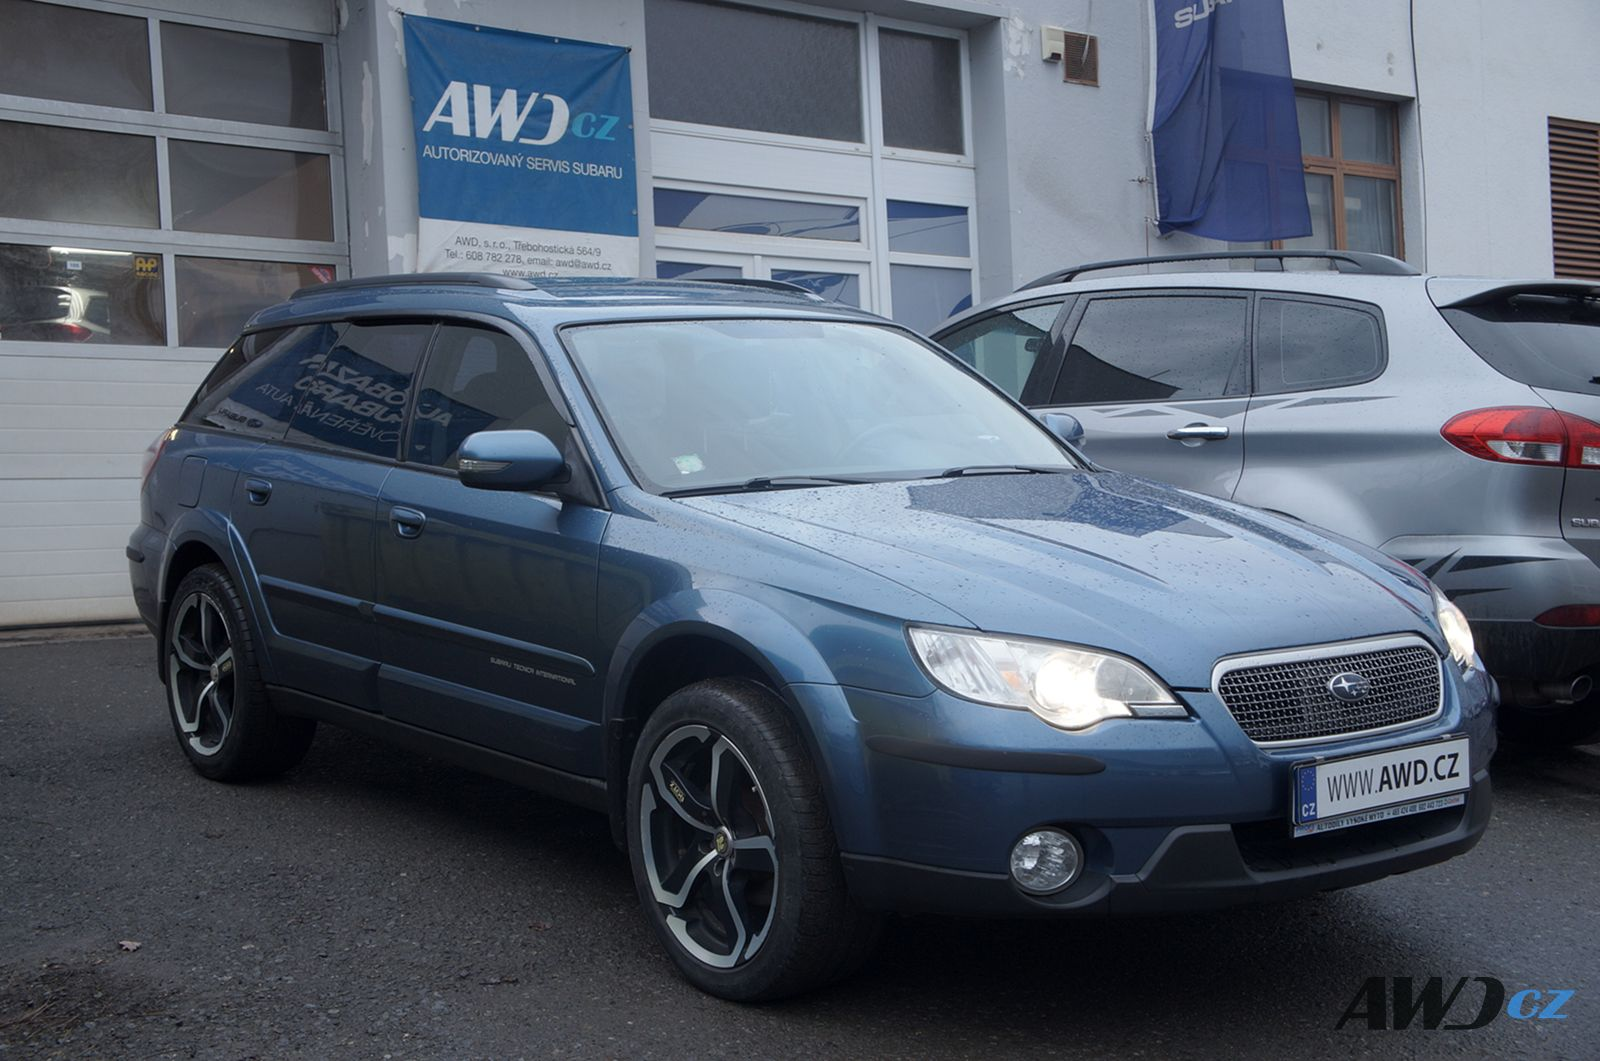 SUBARU Outback 3.0 R Active AT MY2008, 239900.00023Kč, 253000 km, 2008